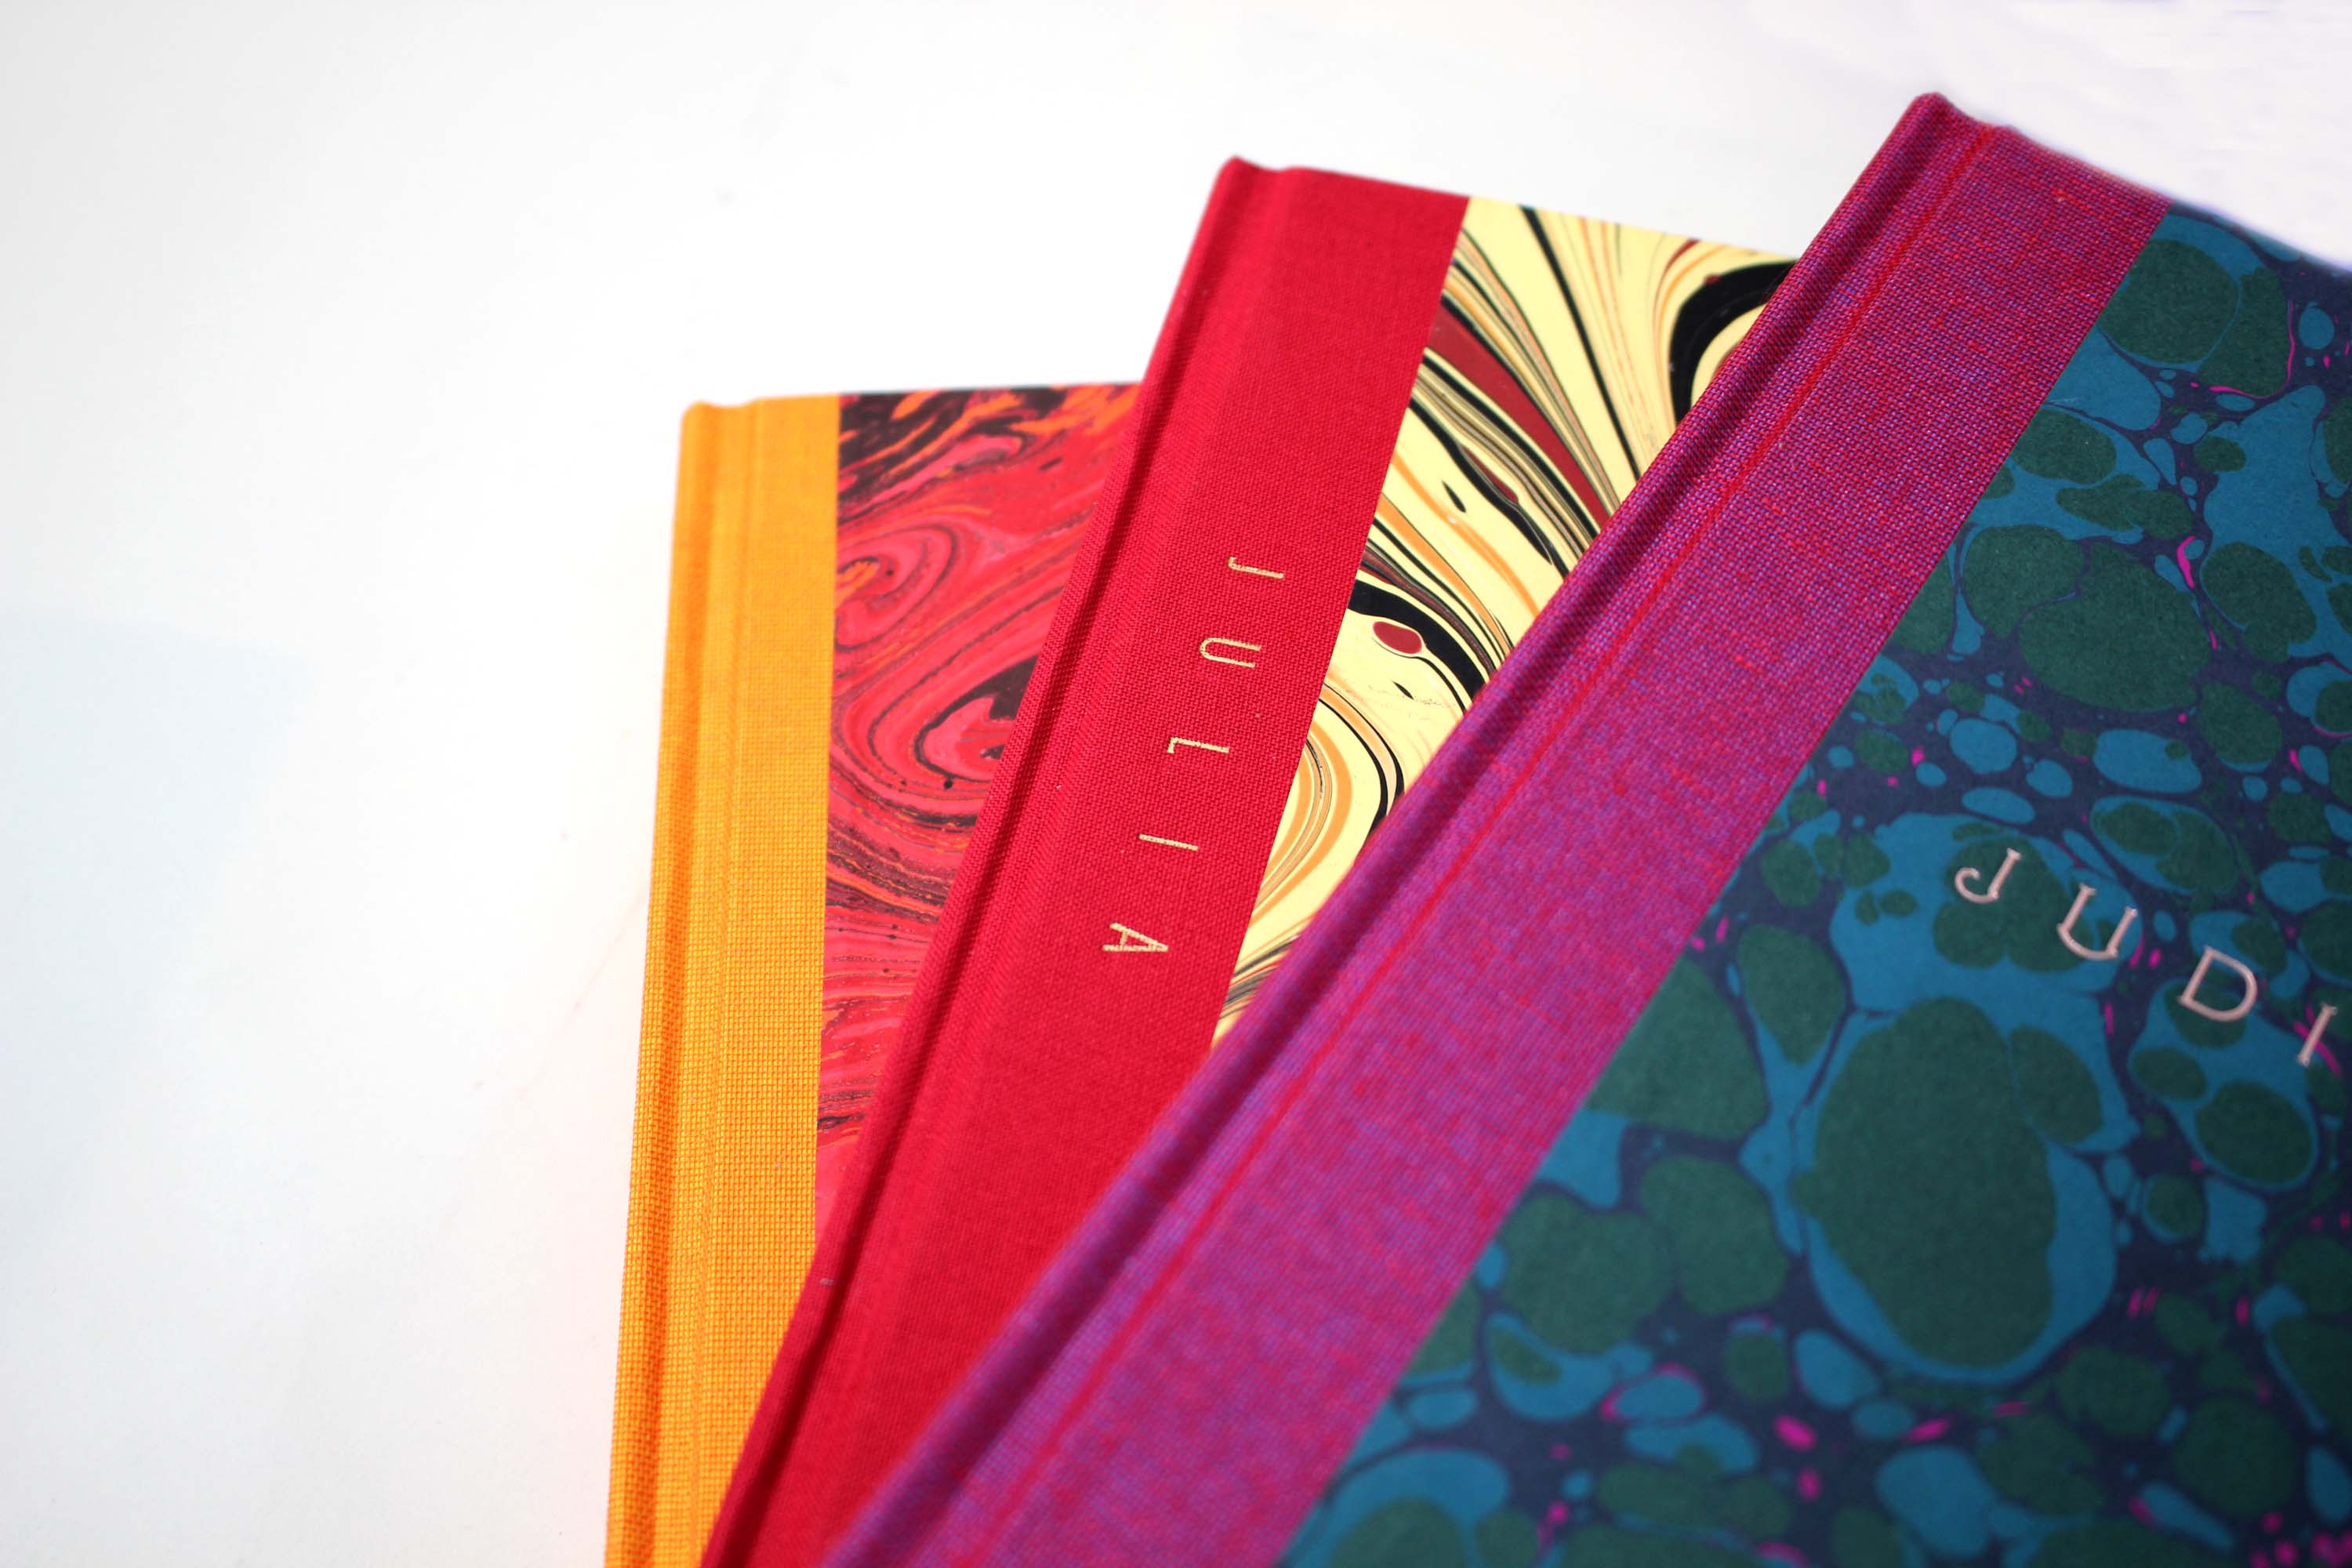 Bookbinding Workshop: Make a Hardcover Book and Slipcase (POSTPONED)